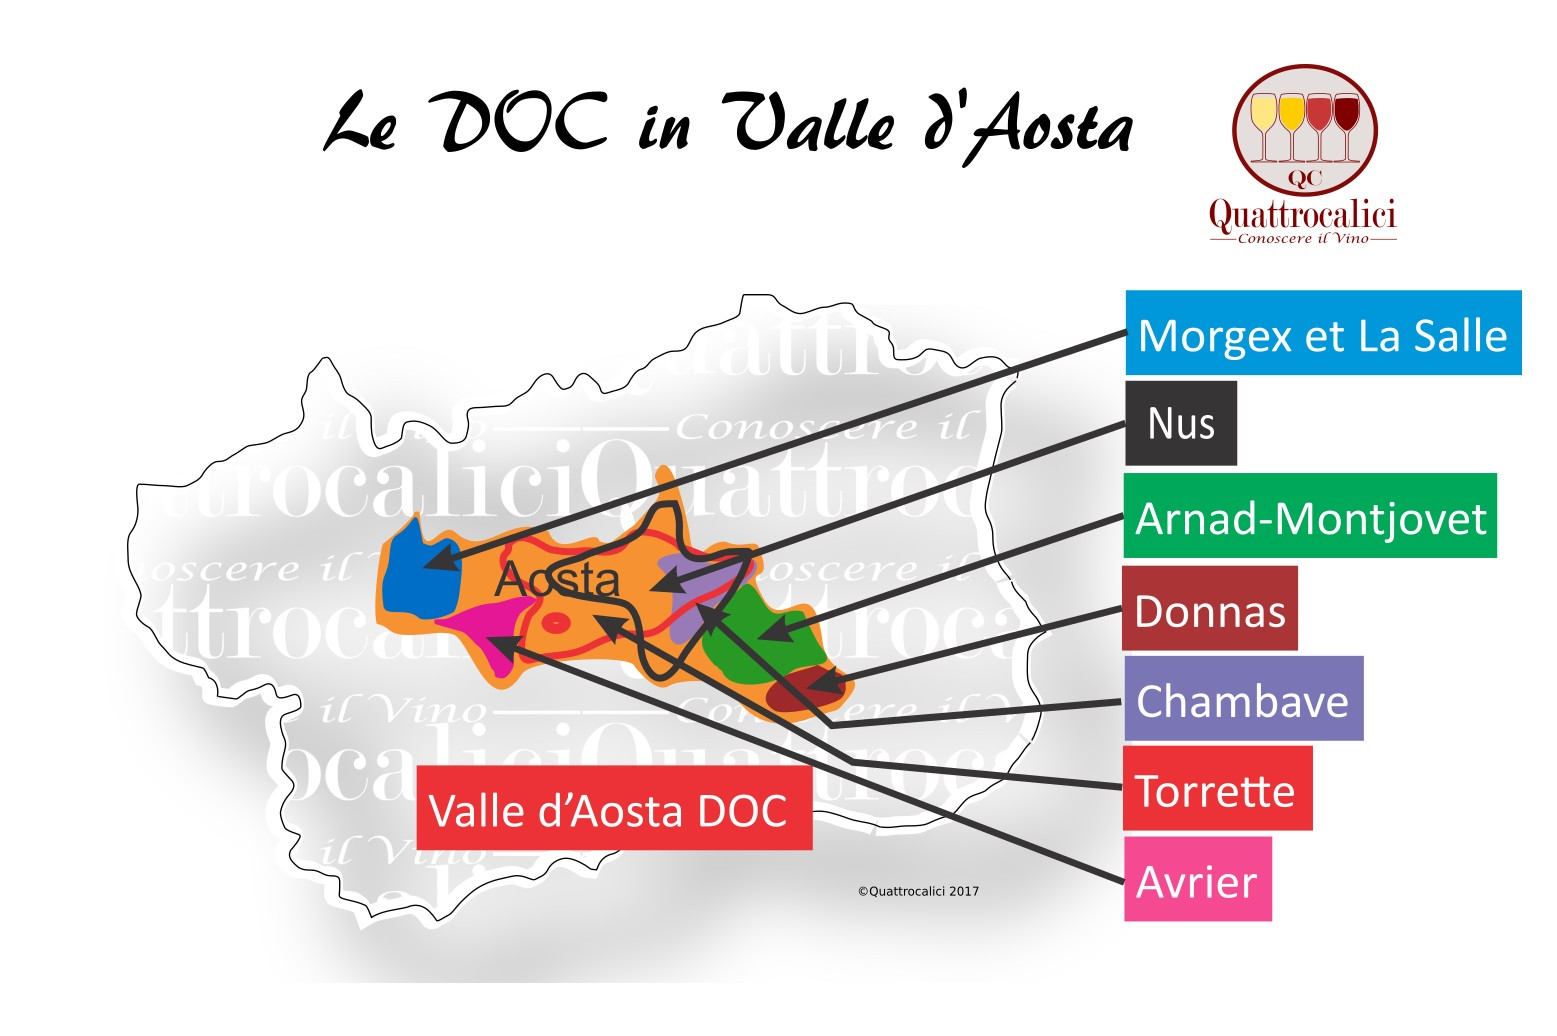 Le DOC in Valle d'Aosta